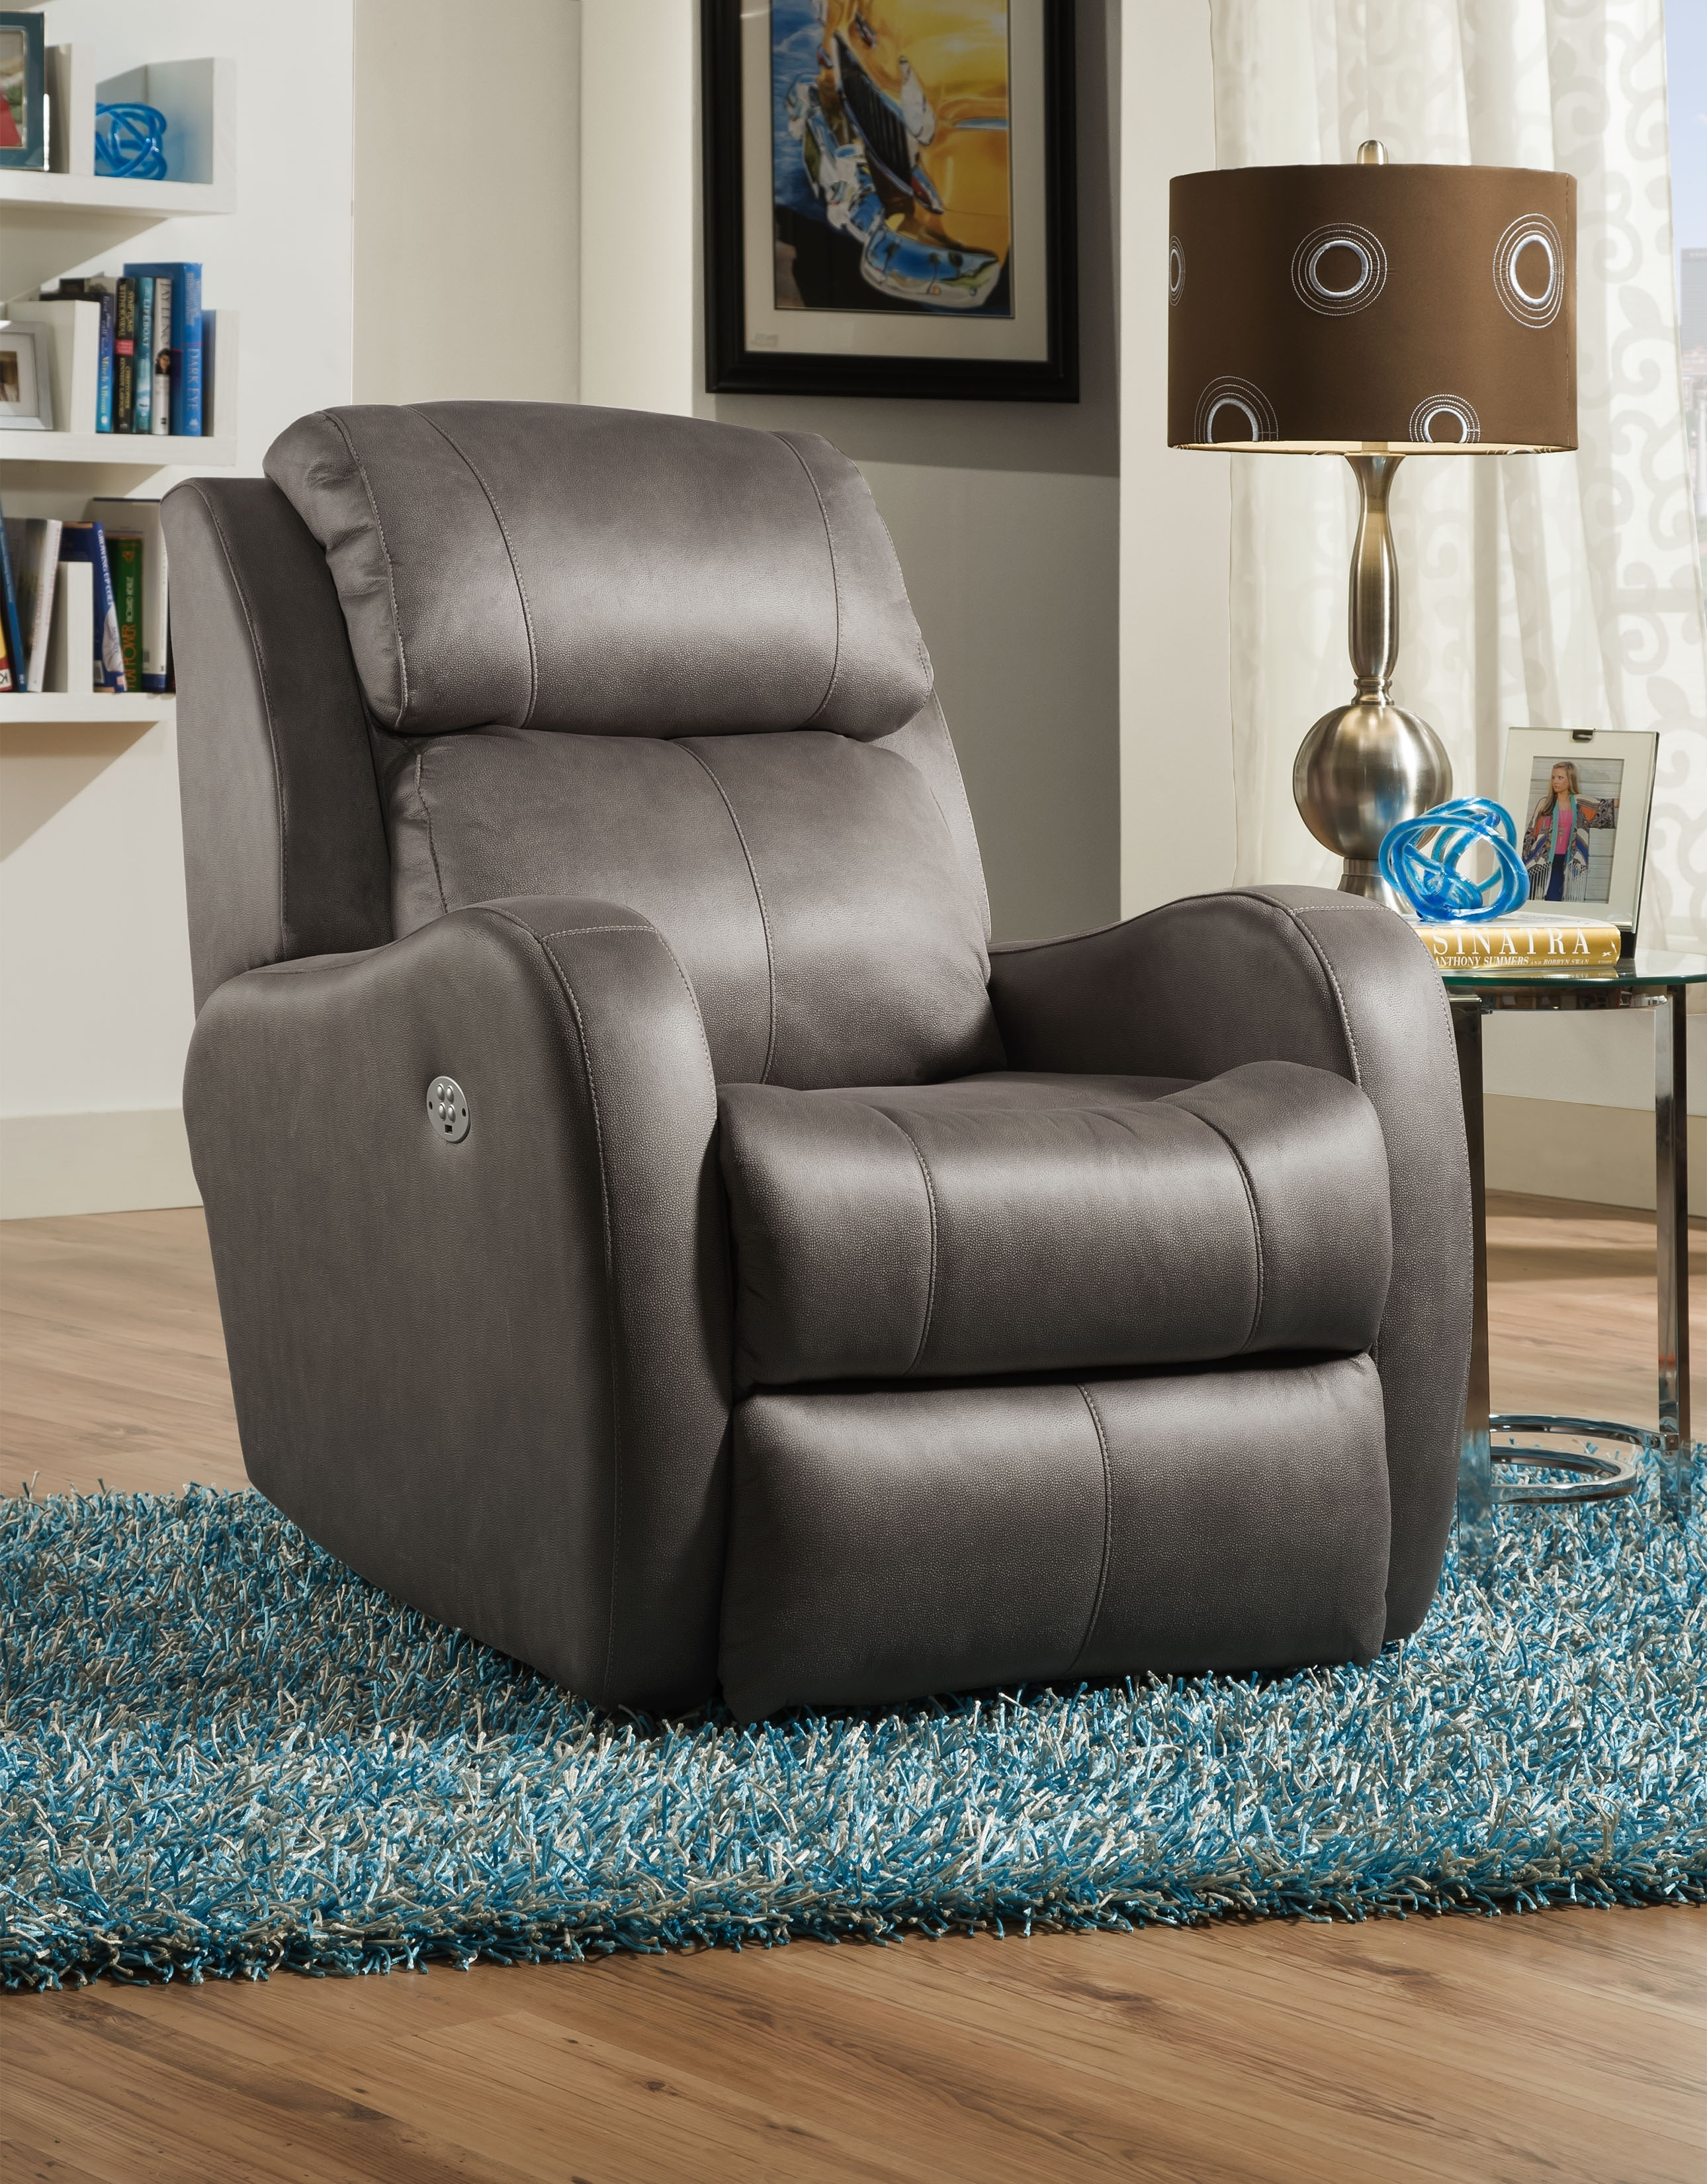 Southern Motion Furniture Products throughout Travis Cognac Leather 6 Piece Power Reclining Sectionals With Power Headrest & Usb (Image 24 of 30)